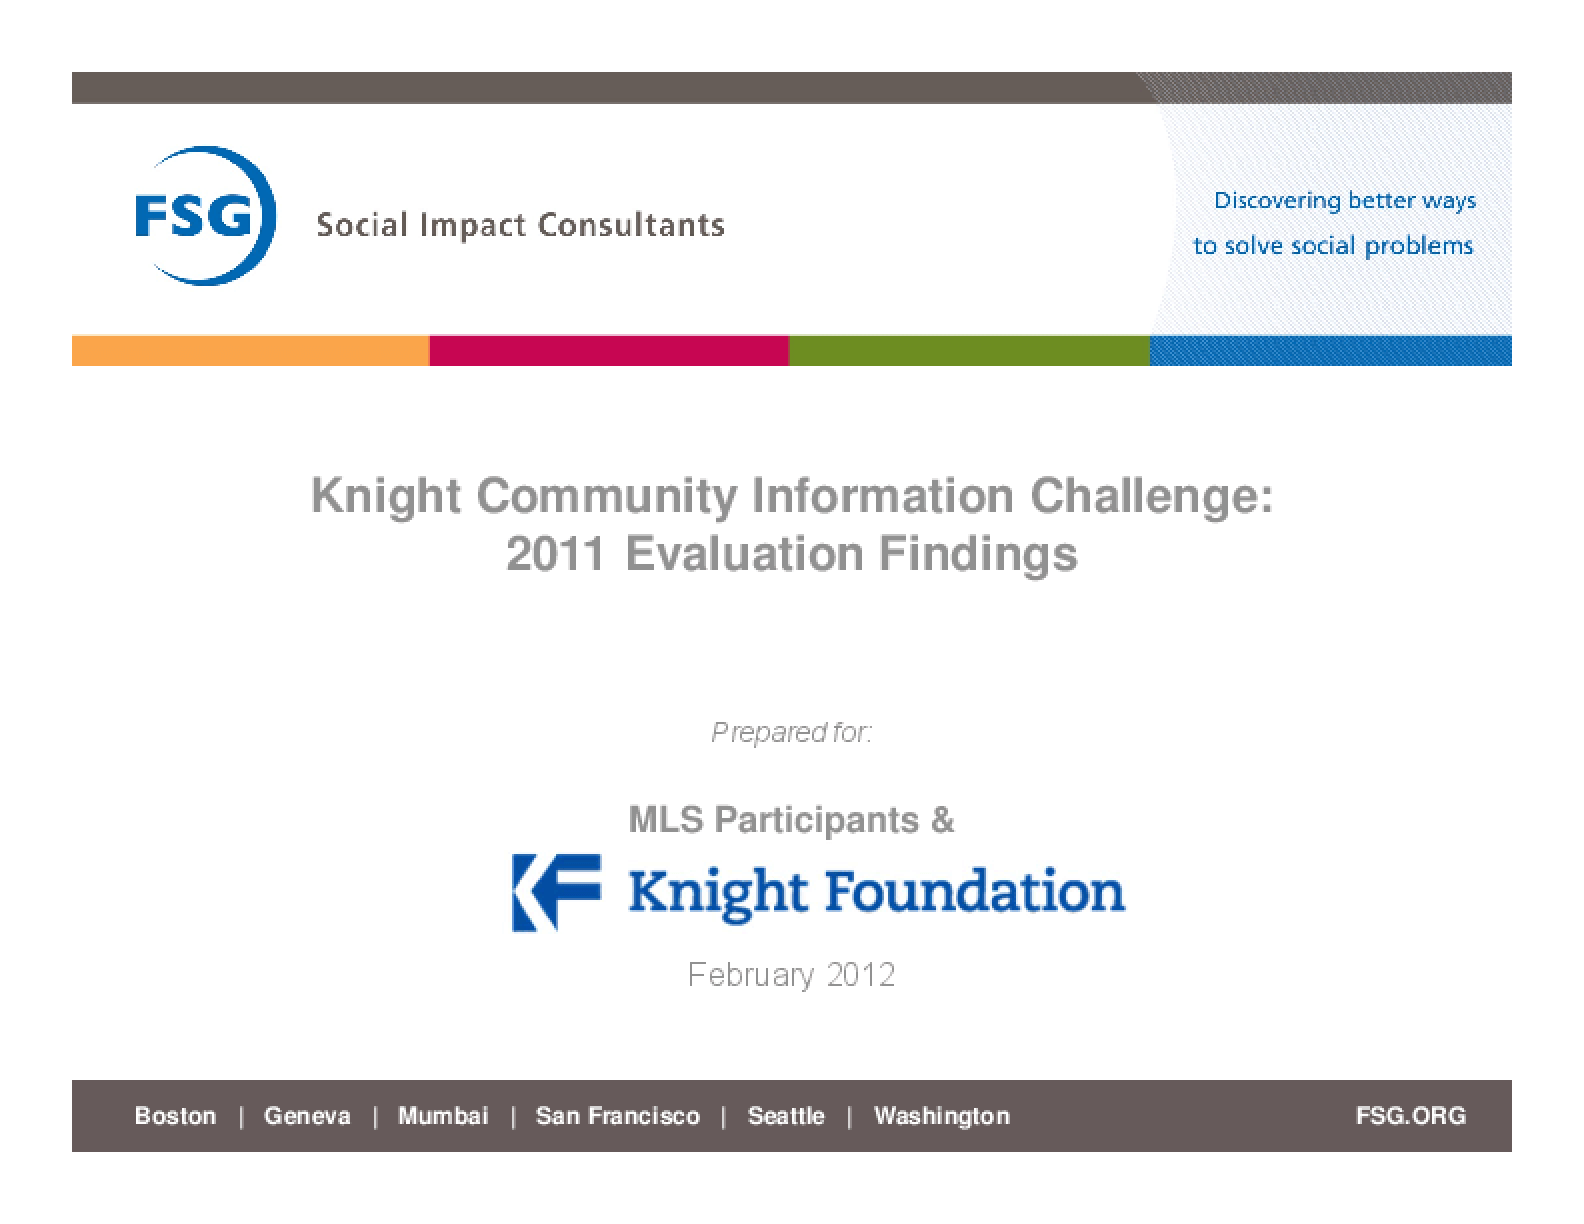 Knight Community Information Challenge: 2011 Evaluation Findings